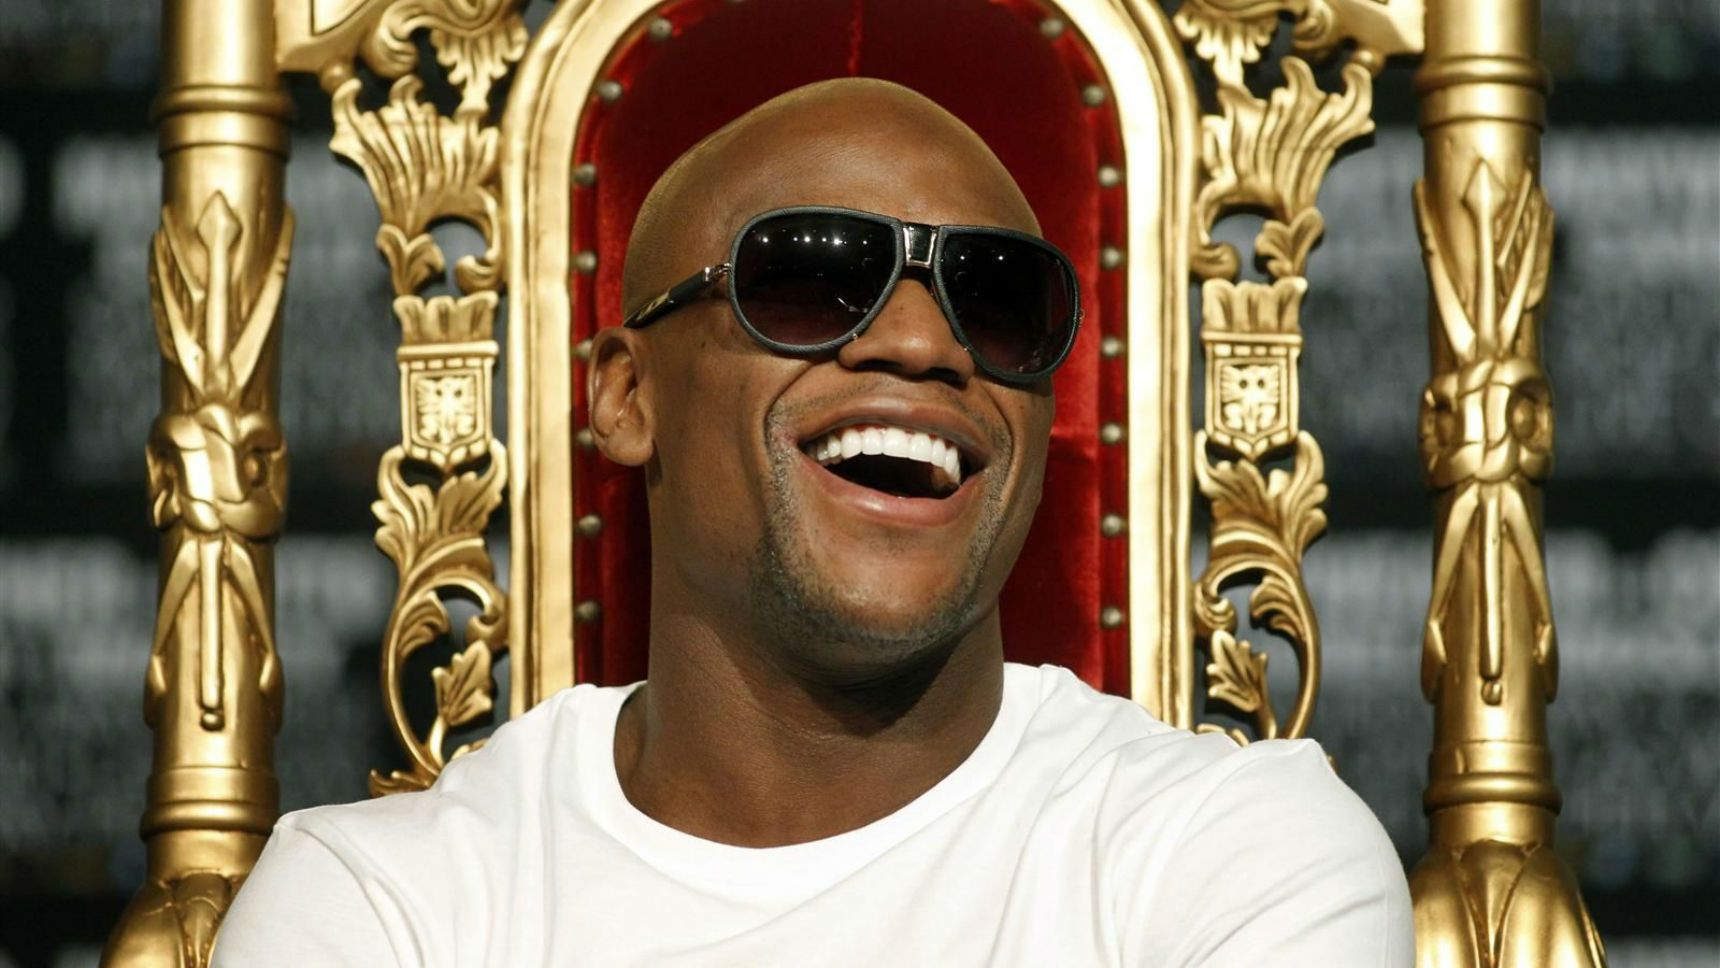 10 Ridiculous Things Floyd Mayweather Does With His Fortune